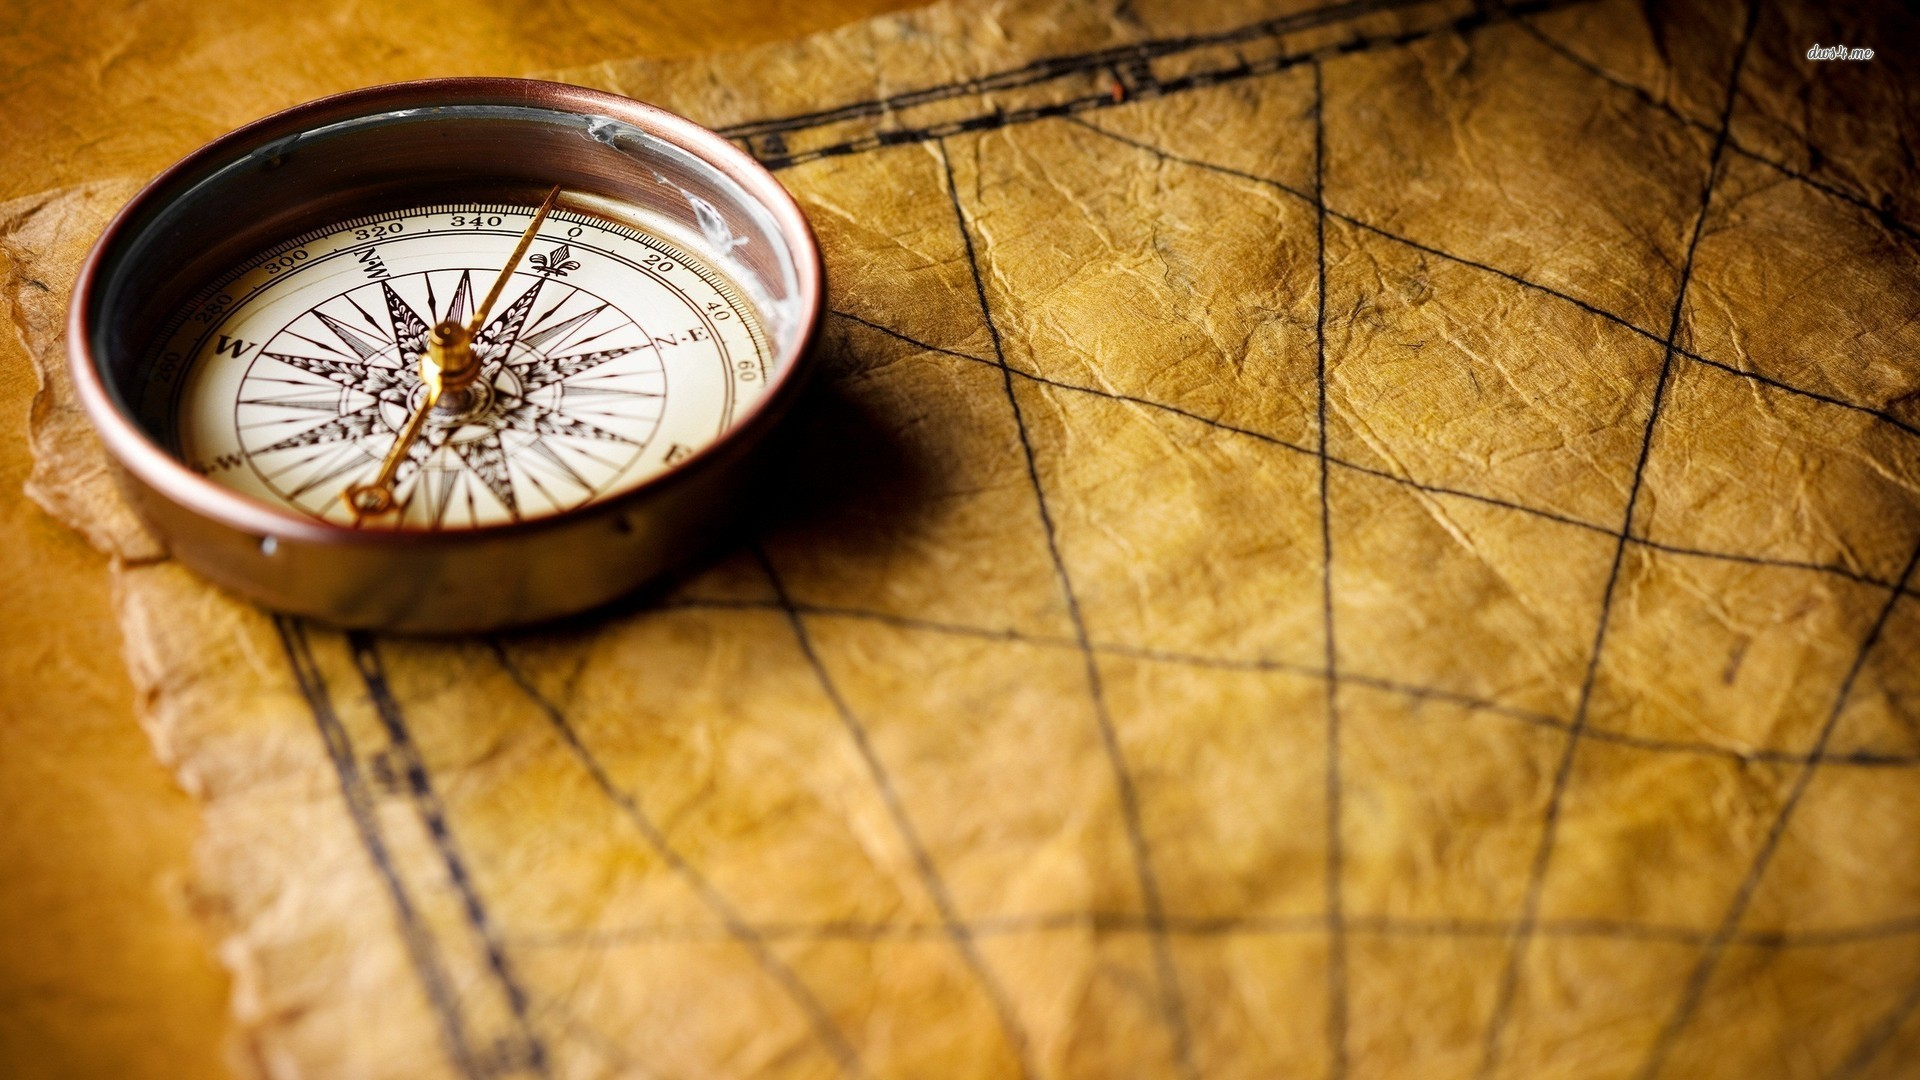 Res: 1920x1080, ... Compass on an old map wallpaper  ...